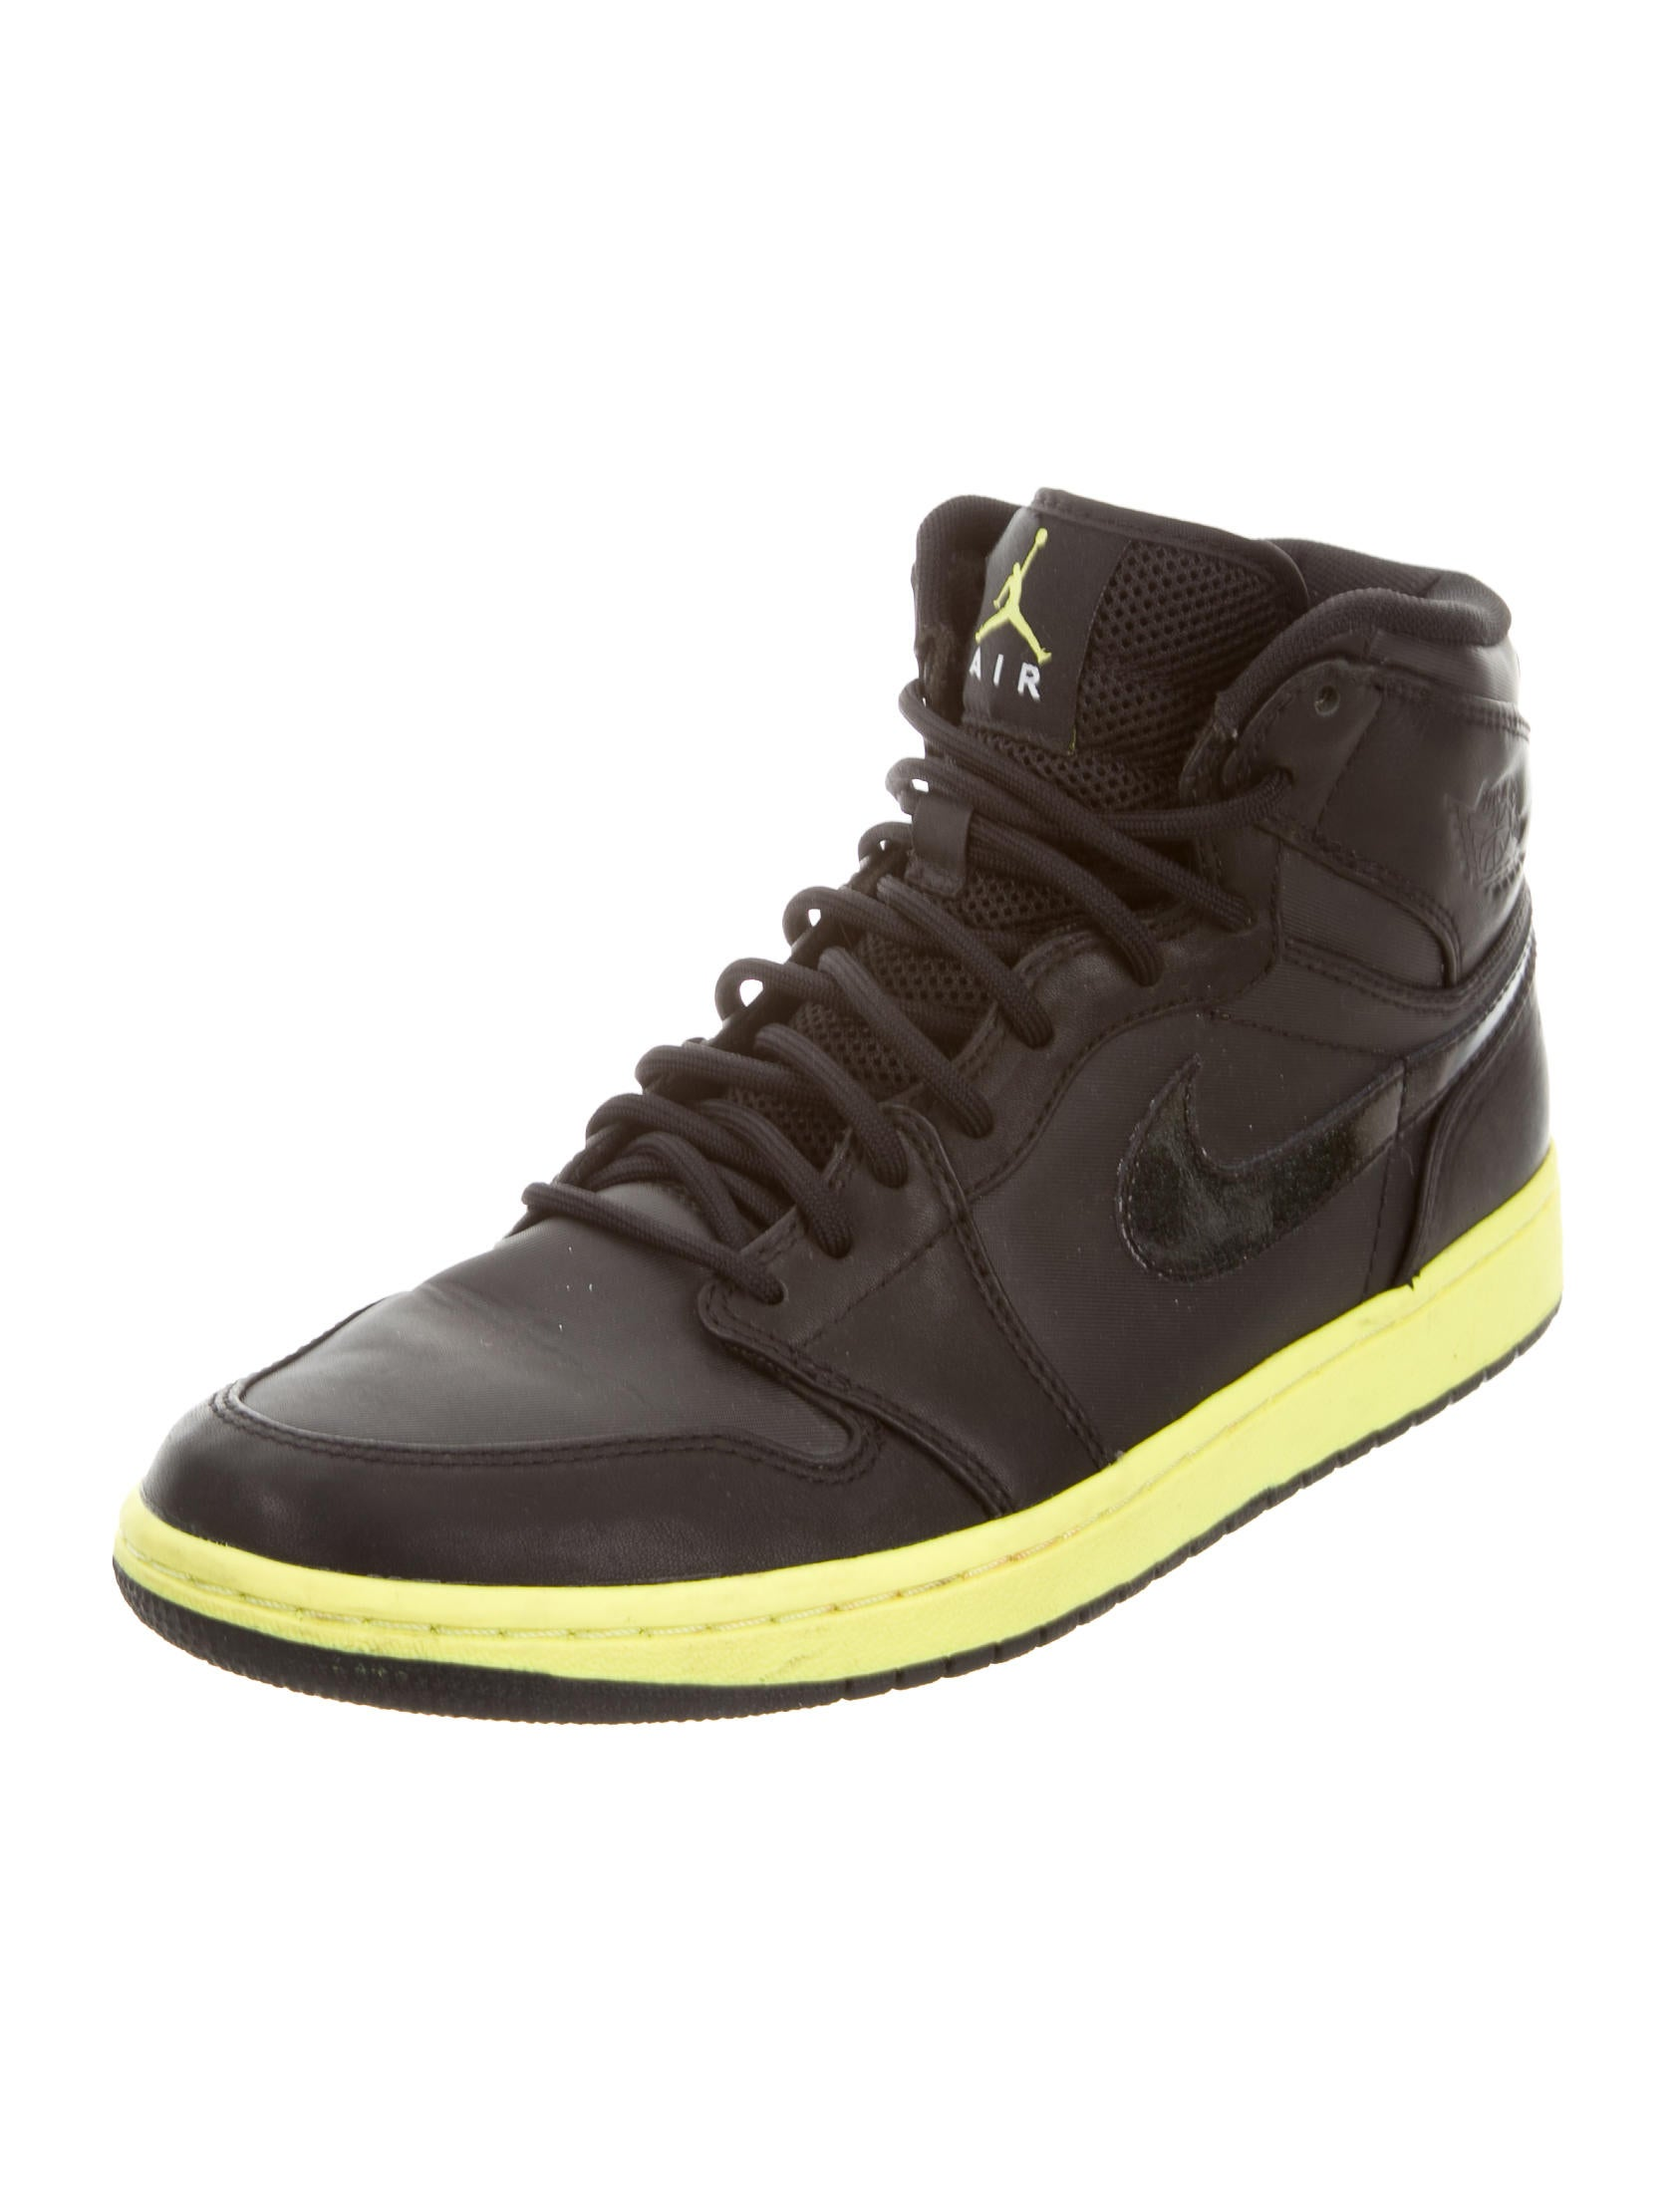 Nike Air Jordan 1 High Strap Sneakers Shoes Wniaj20152